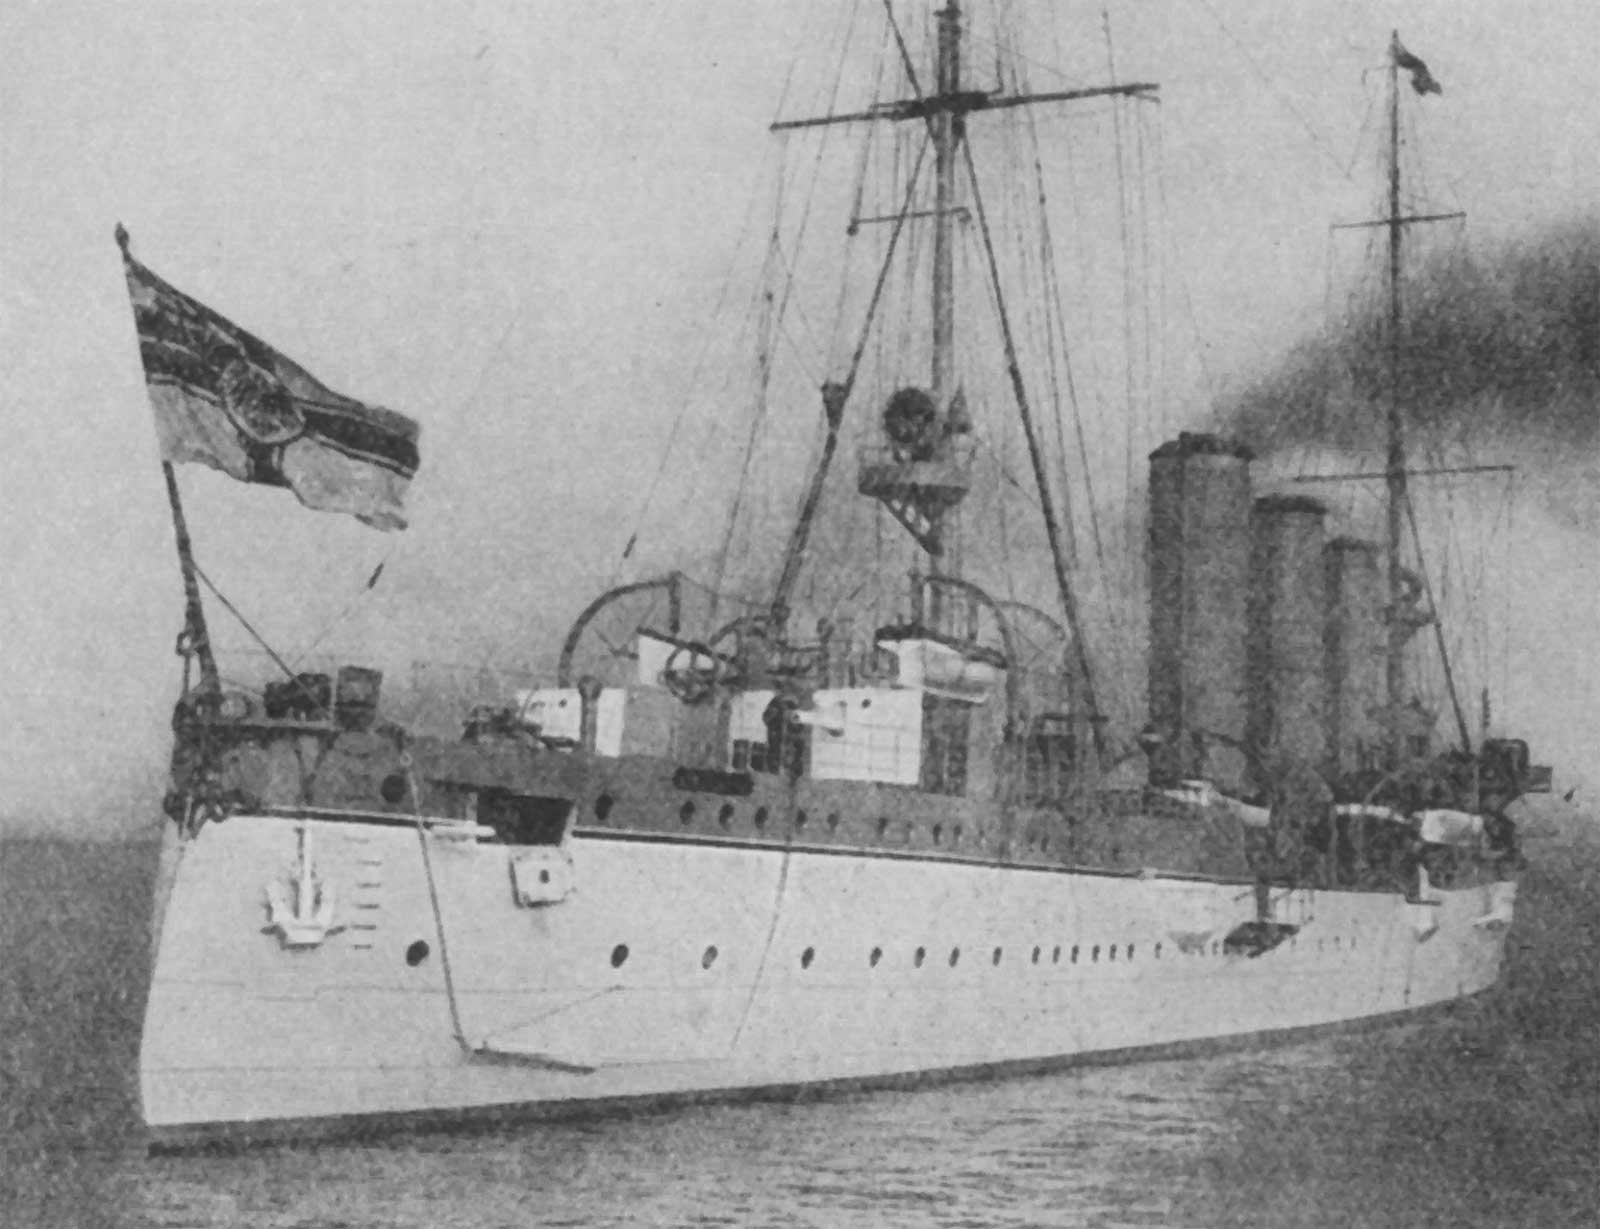 SMS Königsberg, the cruiser that surprised the HMS Pegasus in repairs